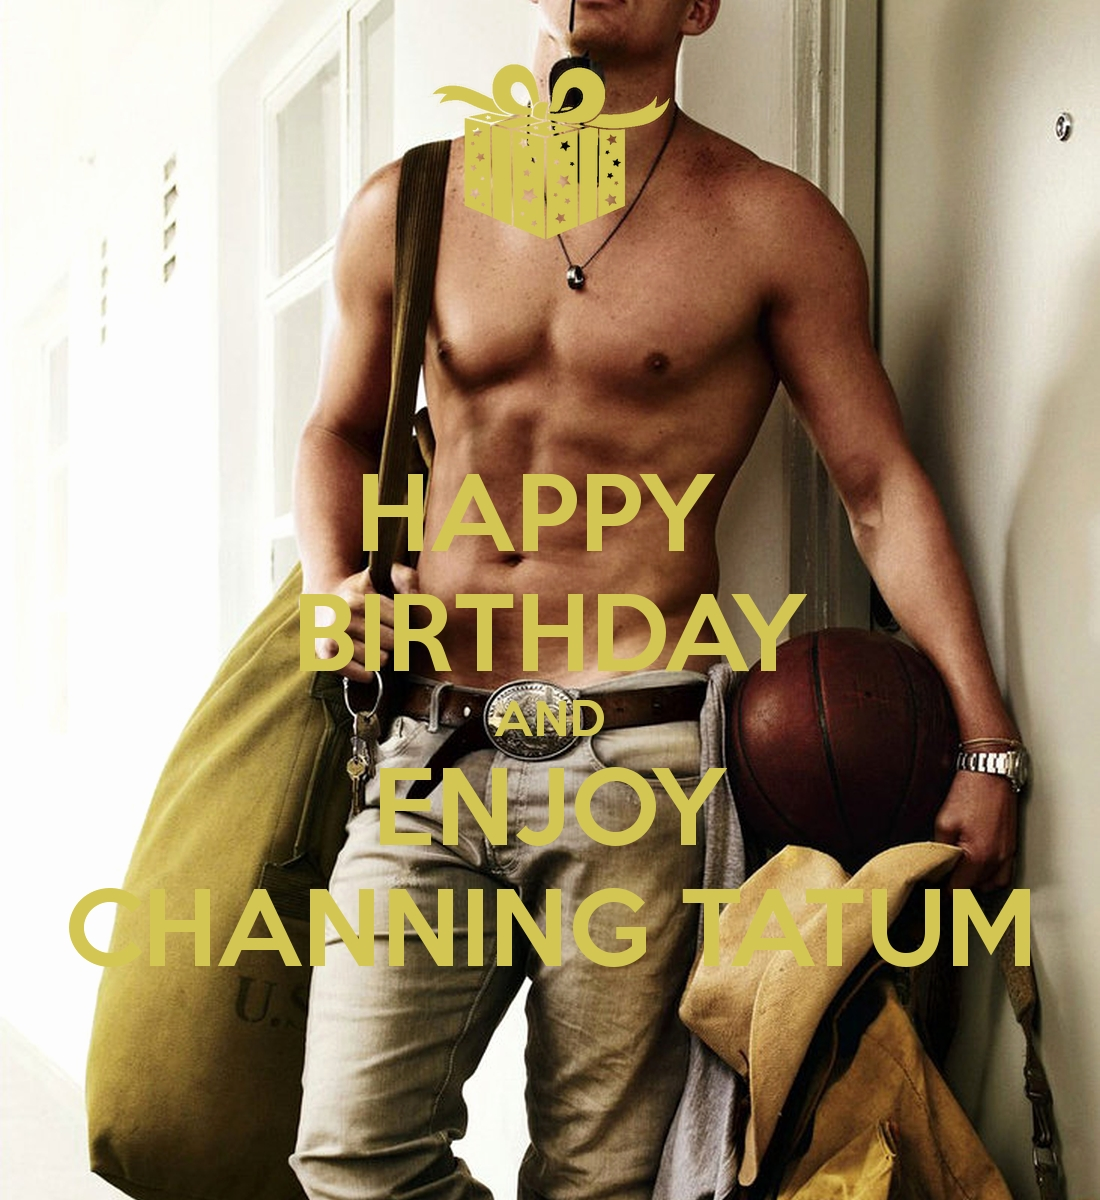 channing tatum birthday greeting ; hot-guys-birthday-wishes-beautiful-happy-birthday-and-enjoy-channing-tatum-poster-of-hot-guys-birthday-wishes